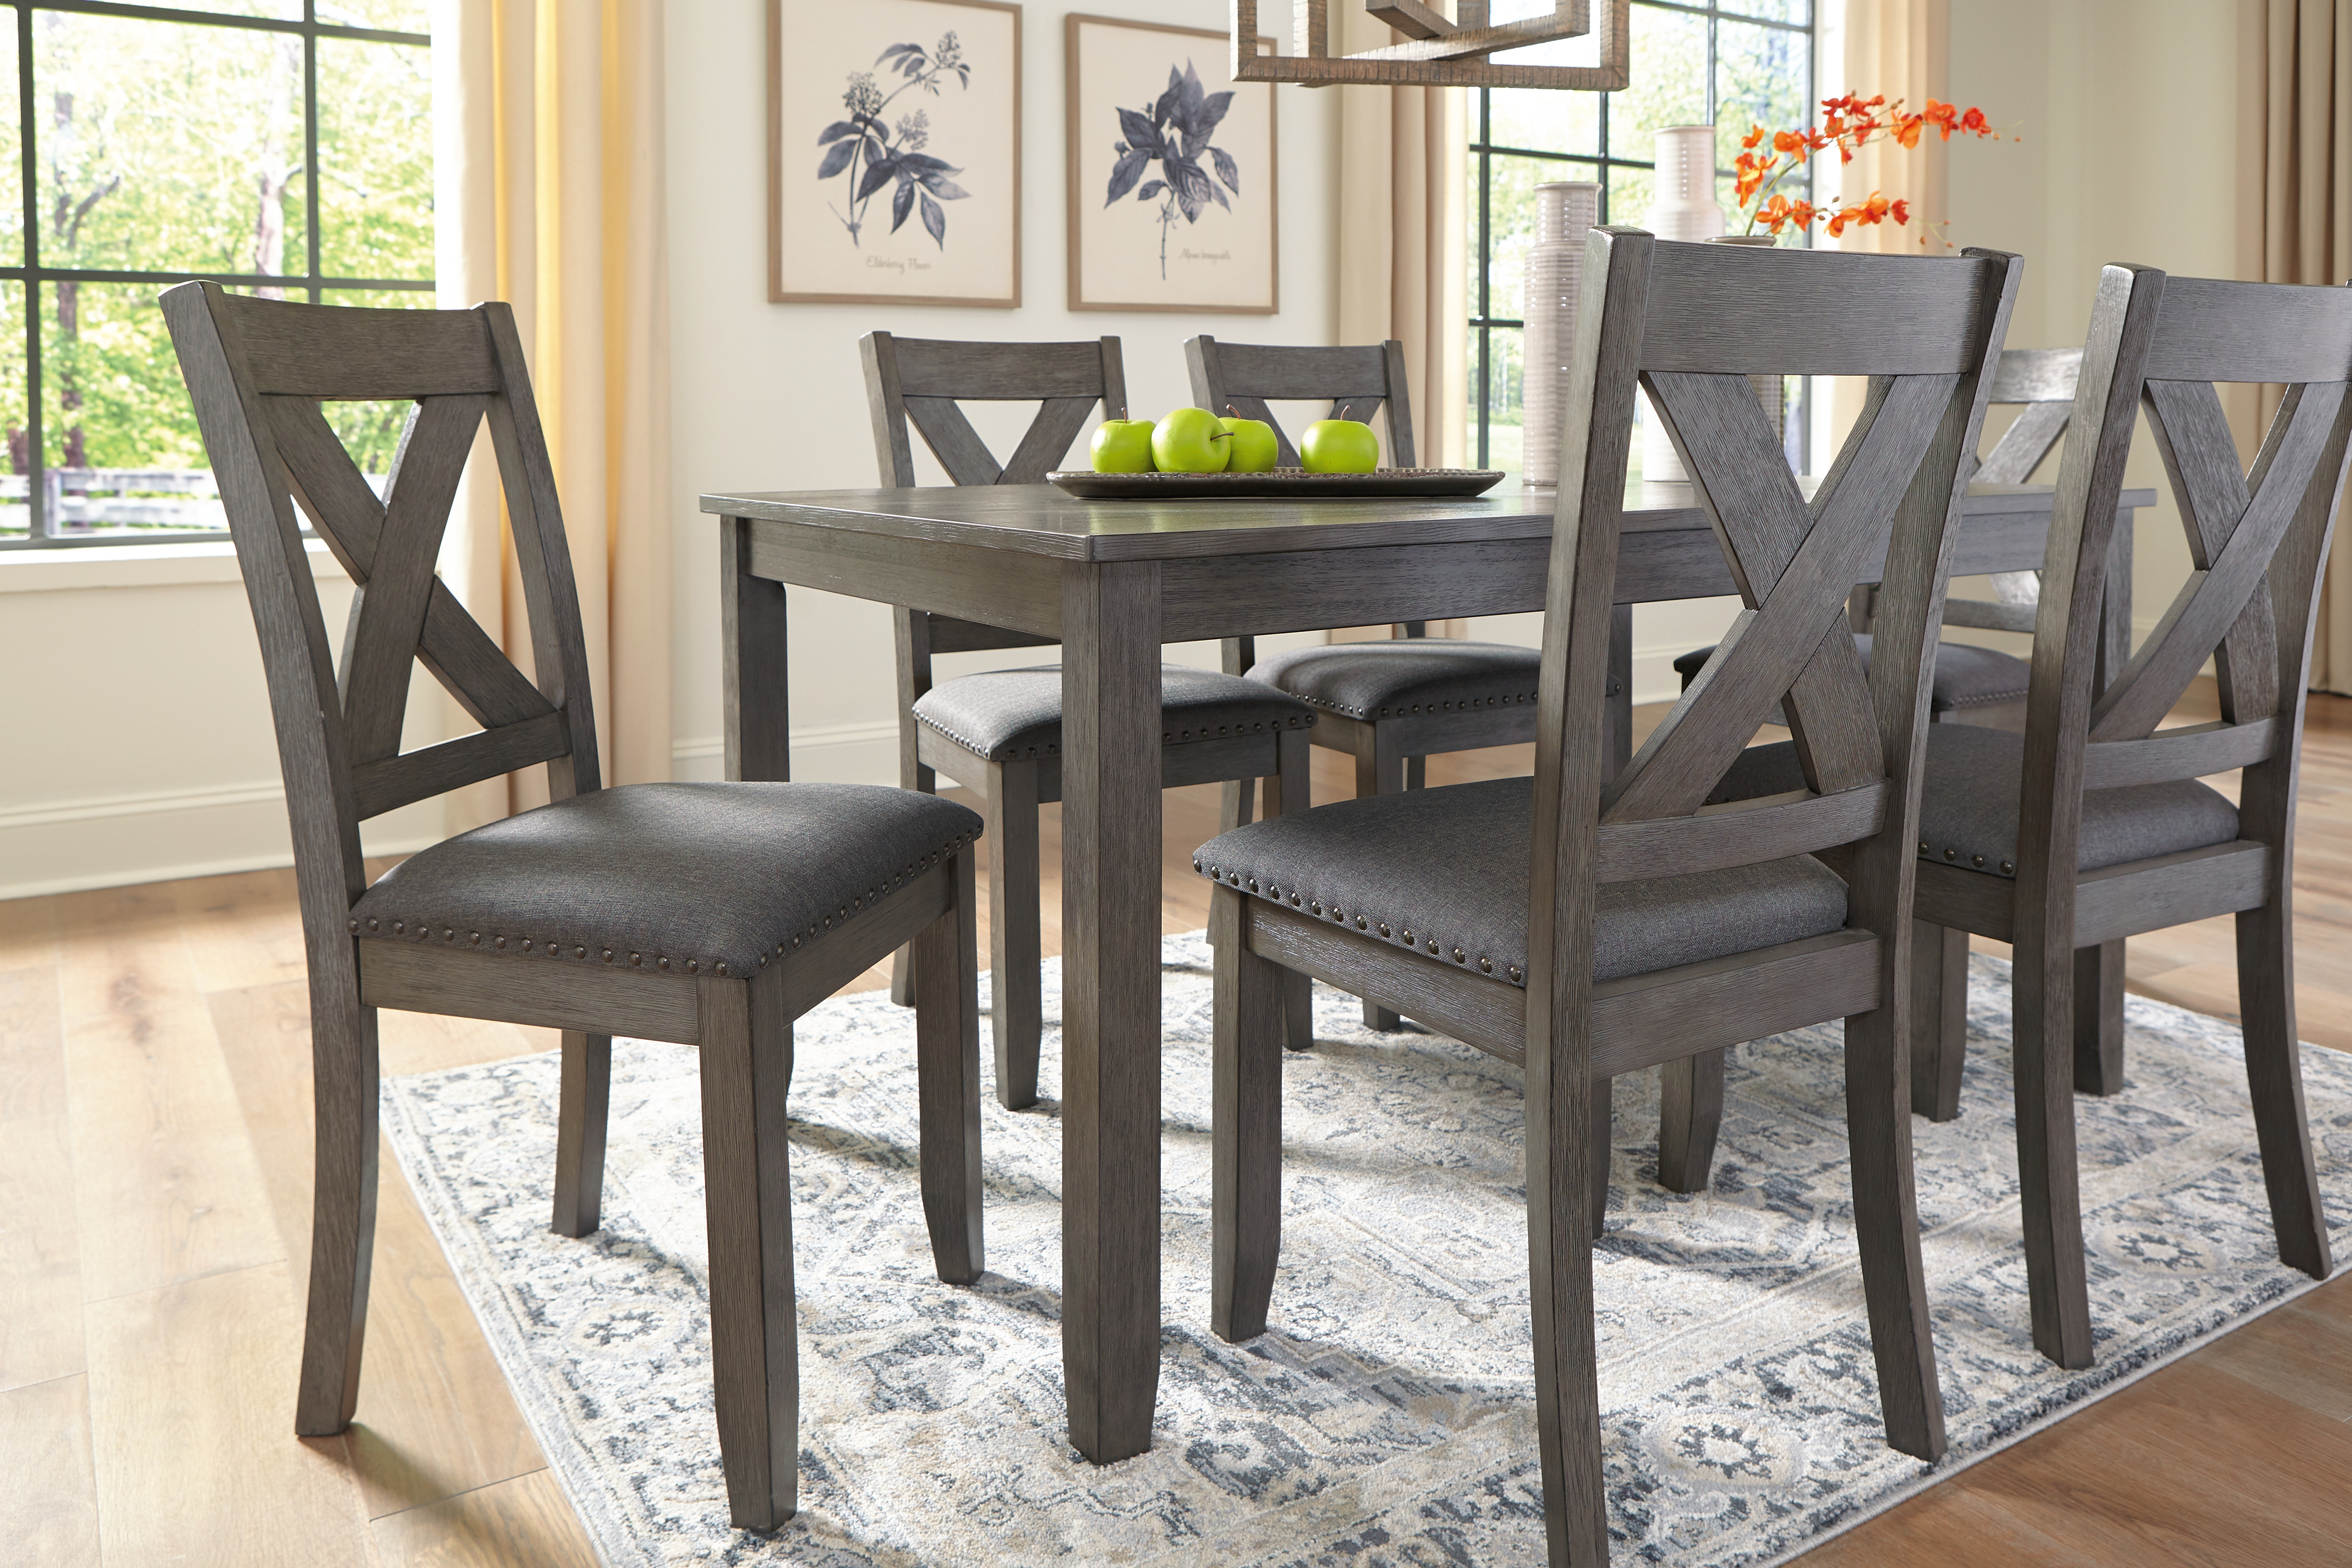 Caitbrook Dining Room Table And Chairs Set Of 7 By Signature Design By Ashley 400228157 Turner S Budget Furniture